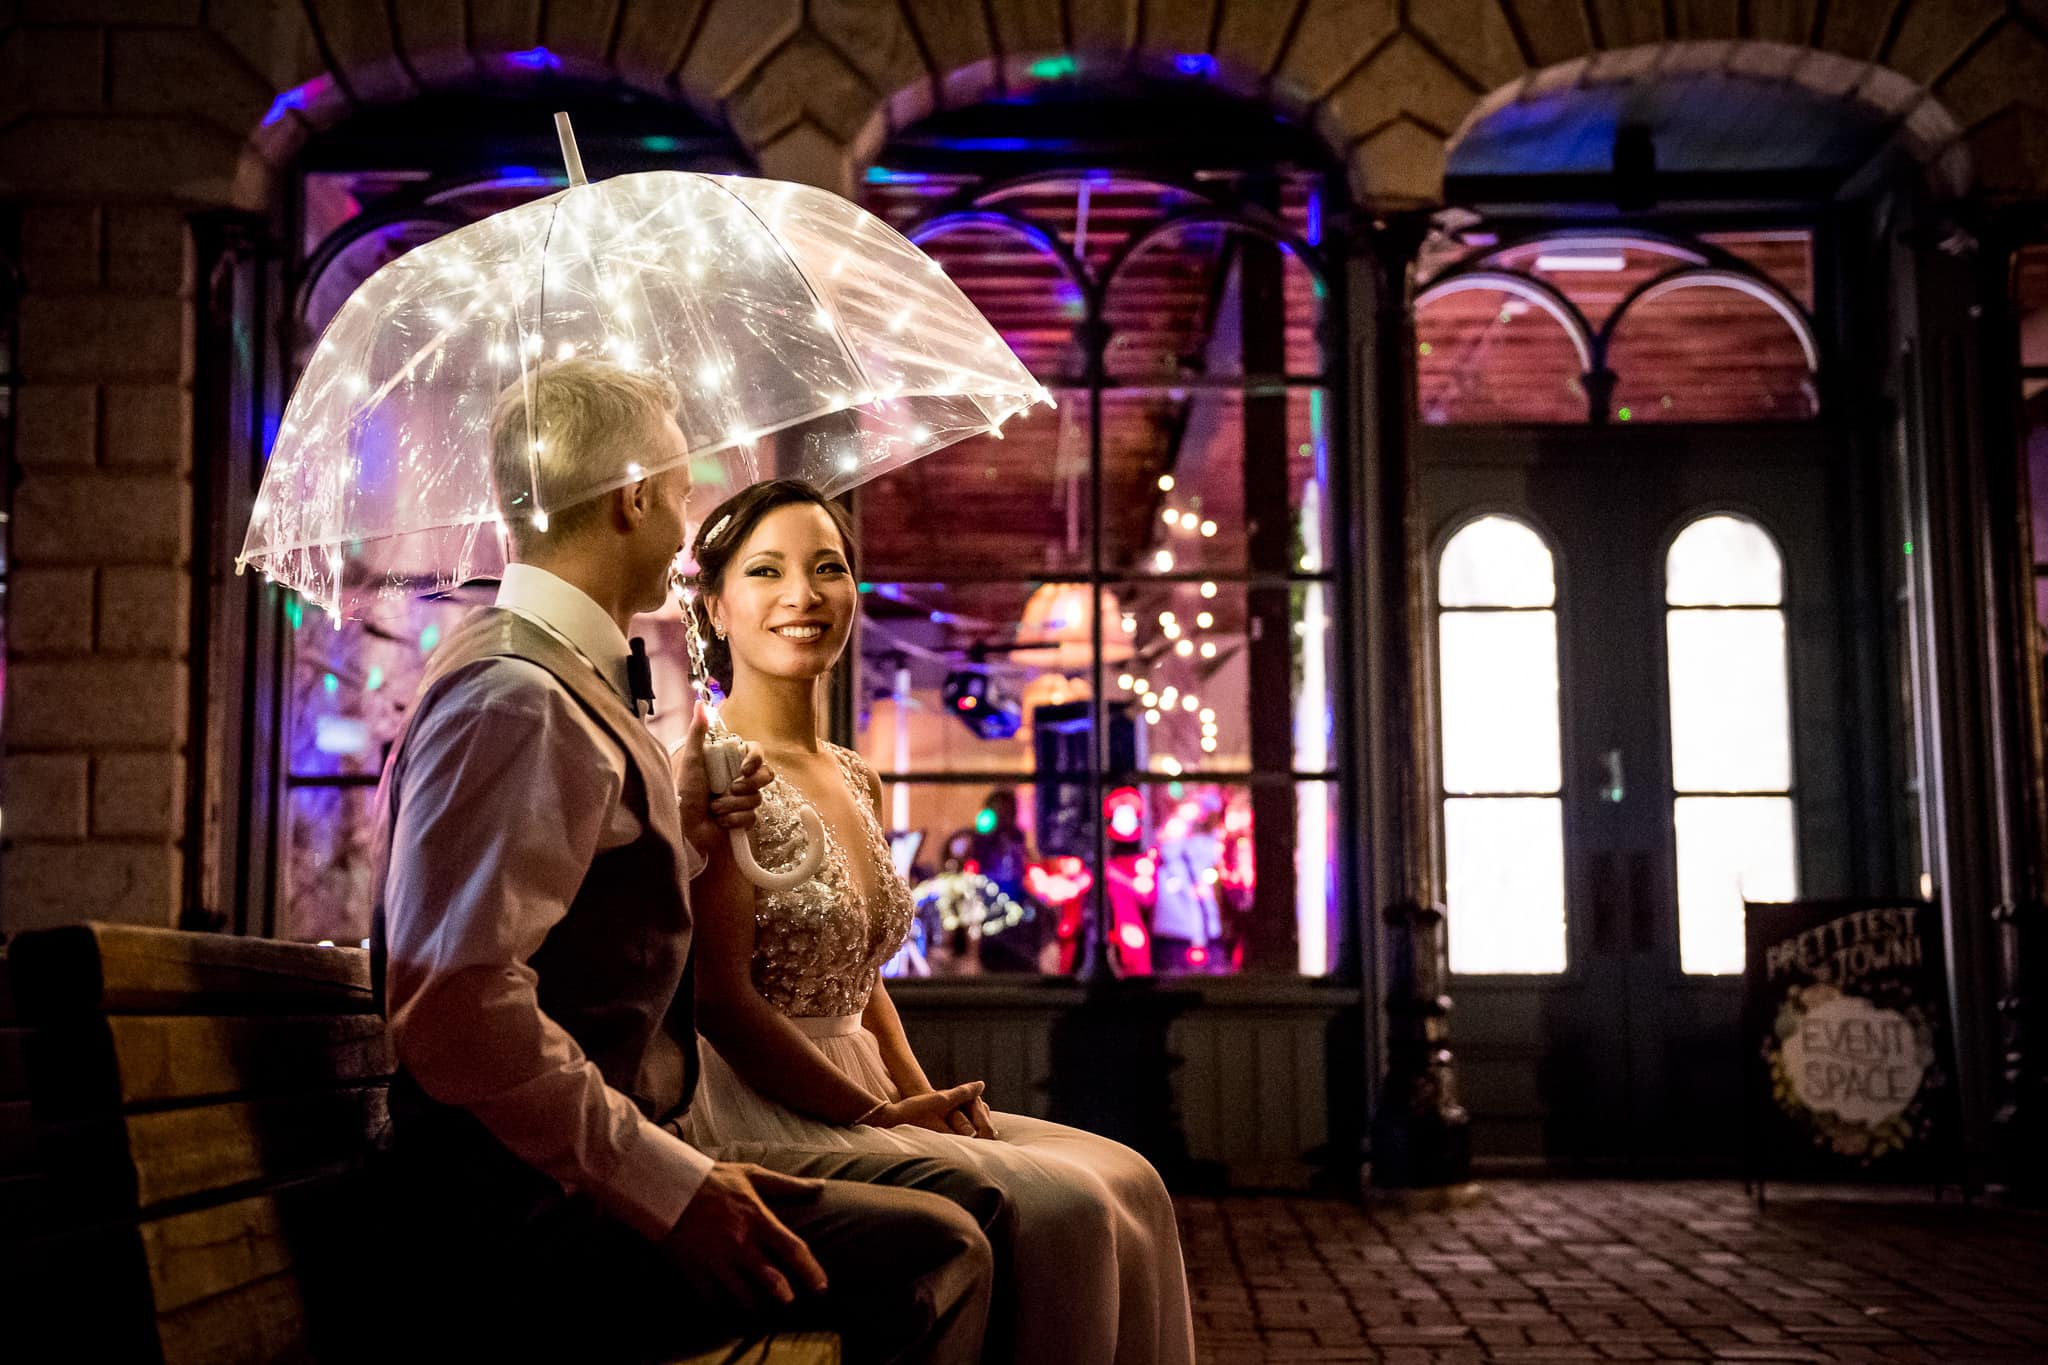 Aster Cafe wedding photo of couple sitting on bench outside at night under a lit up umbrella made by the bride